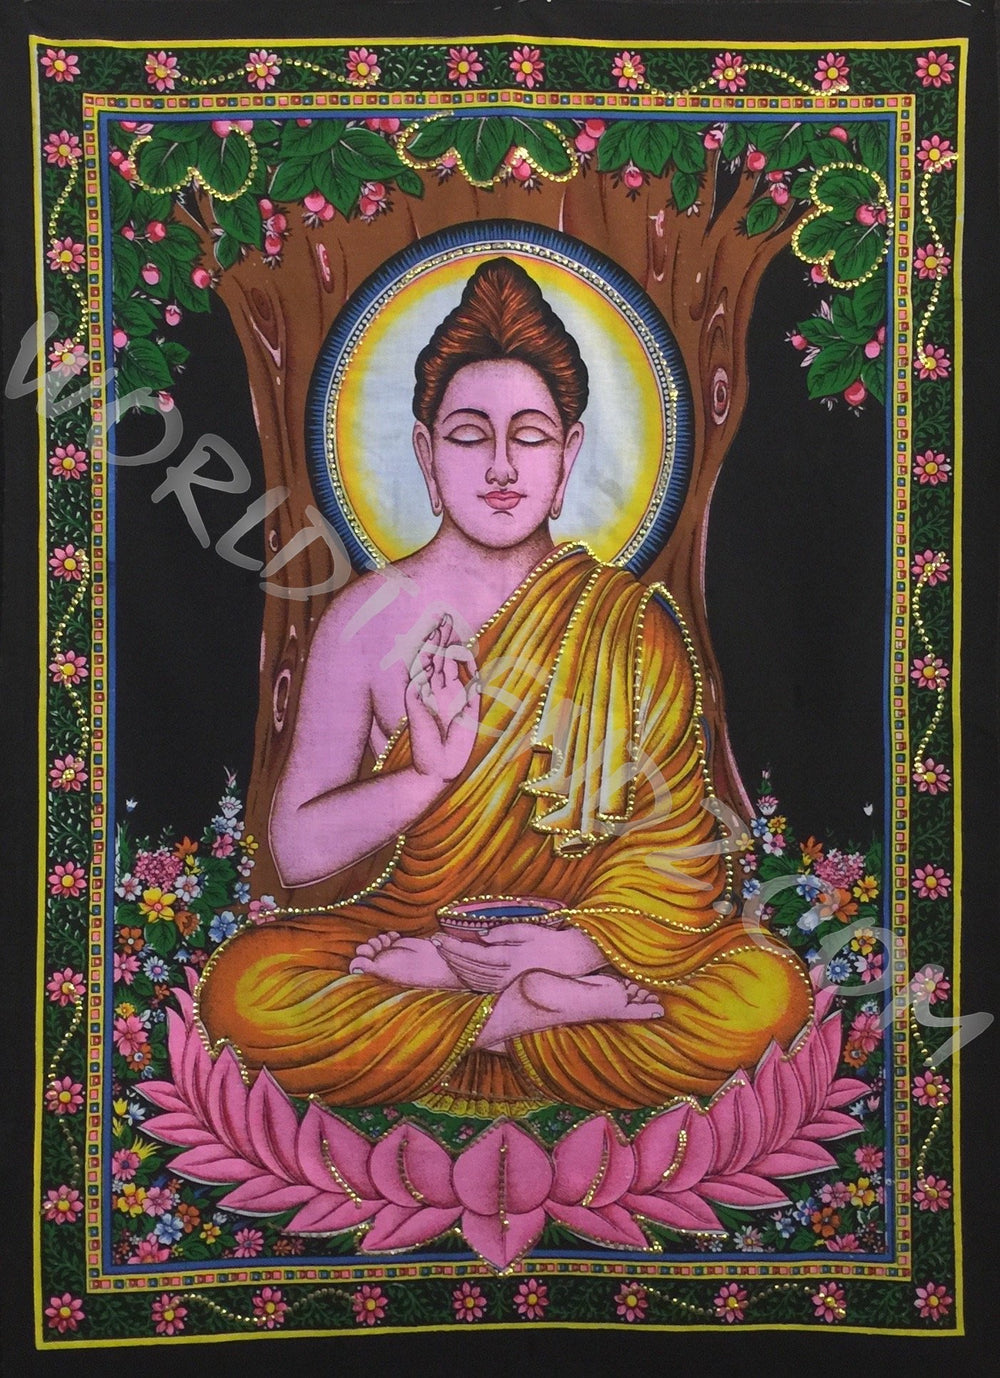 DEITY TAPESTRY SEQUINED BUDDHA BLESSING